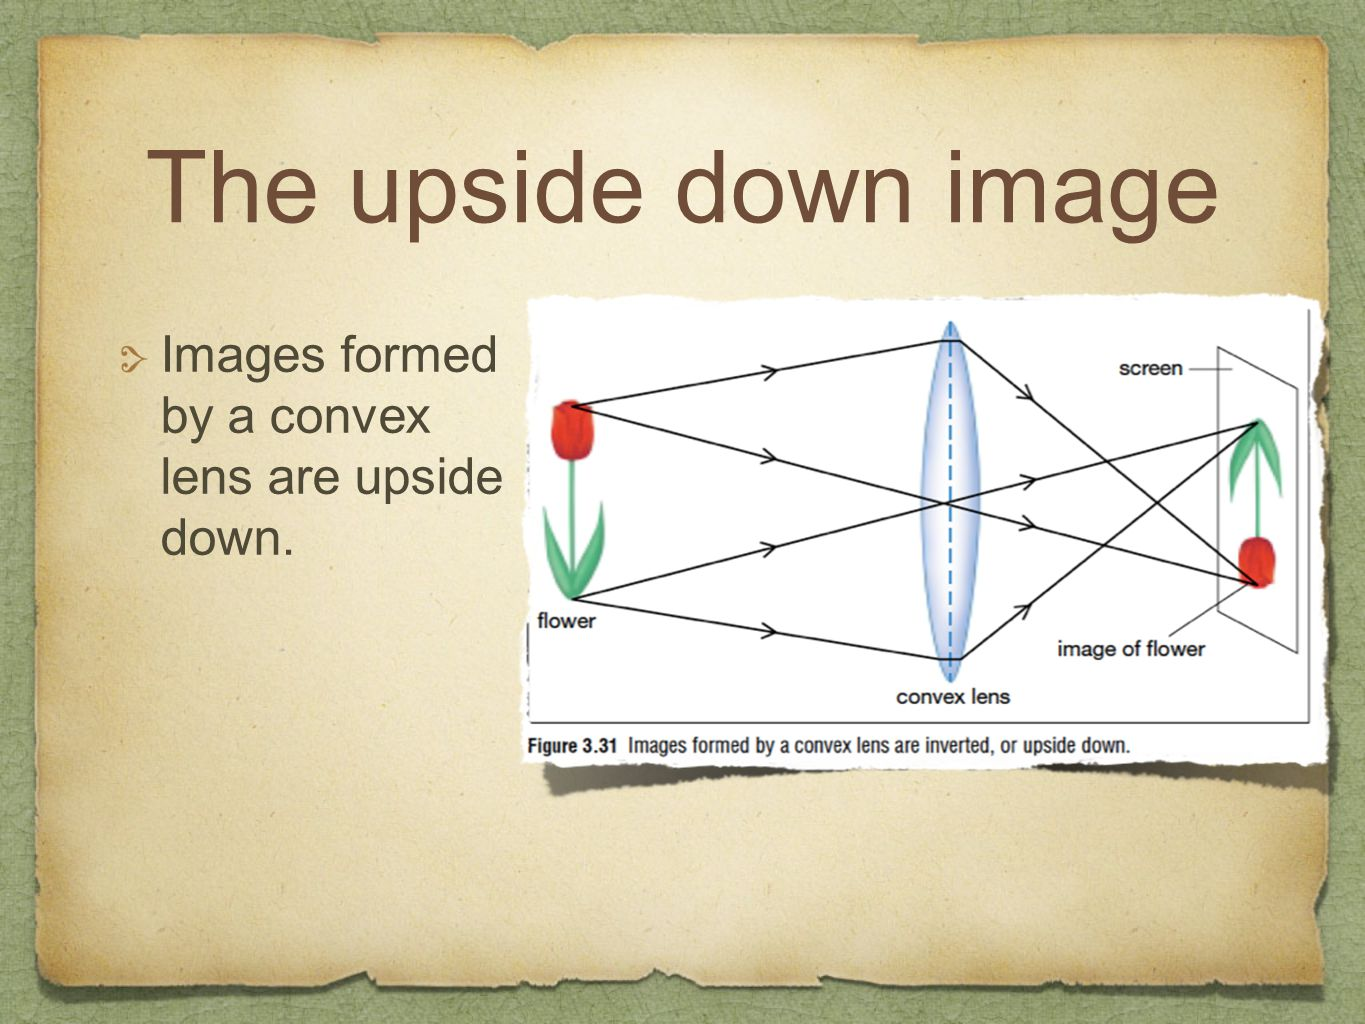 The upside down image Images formed by a convex lens are upside down.